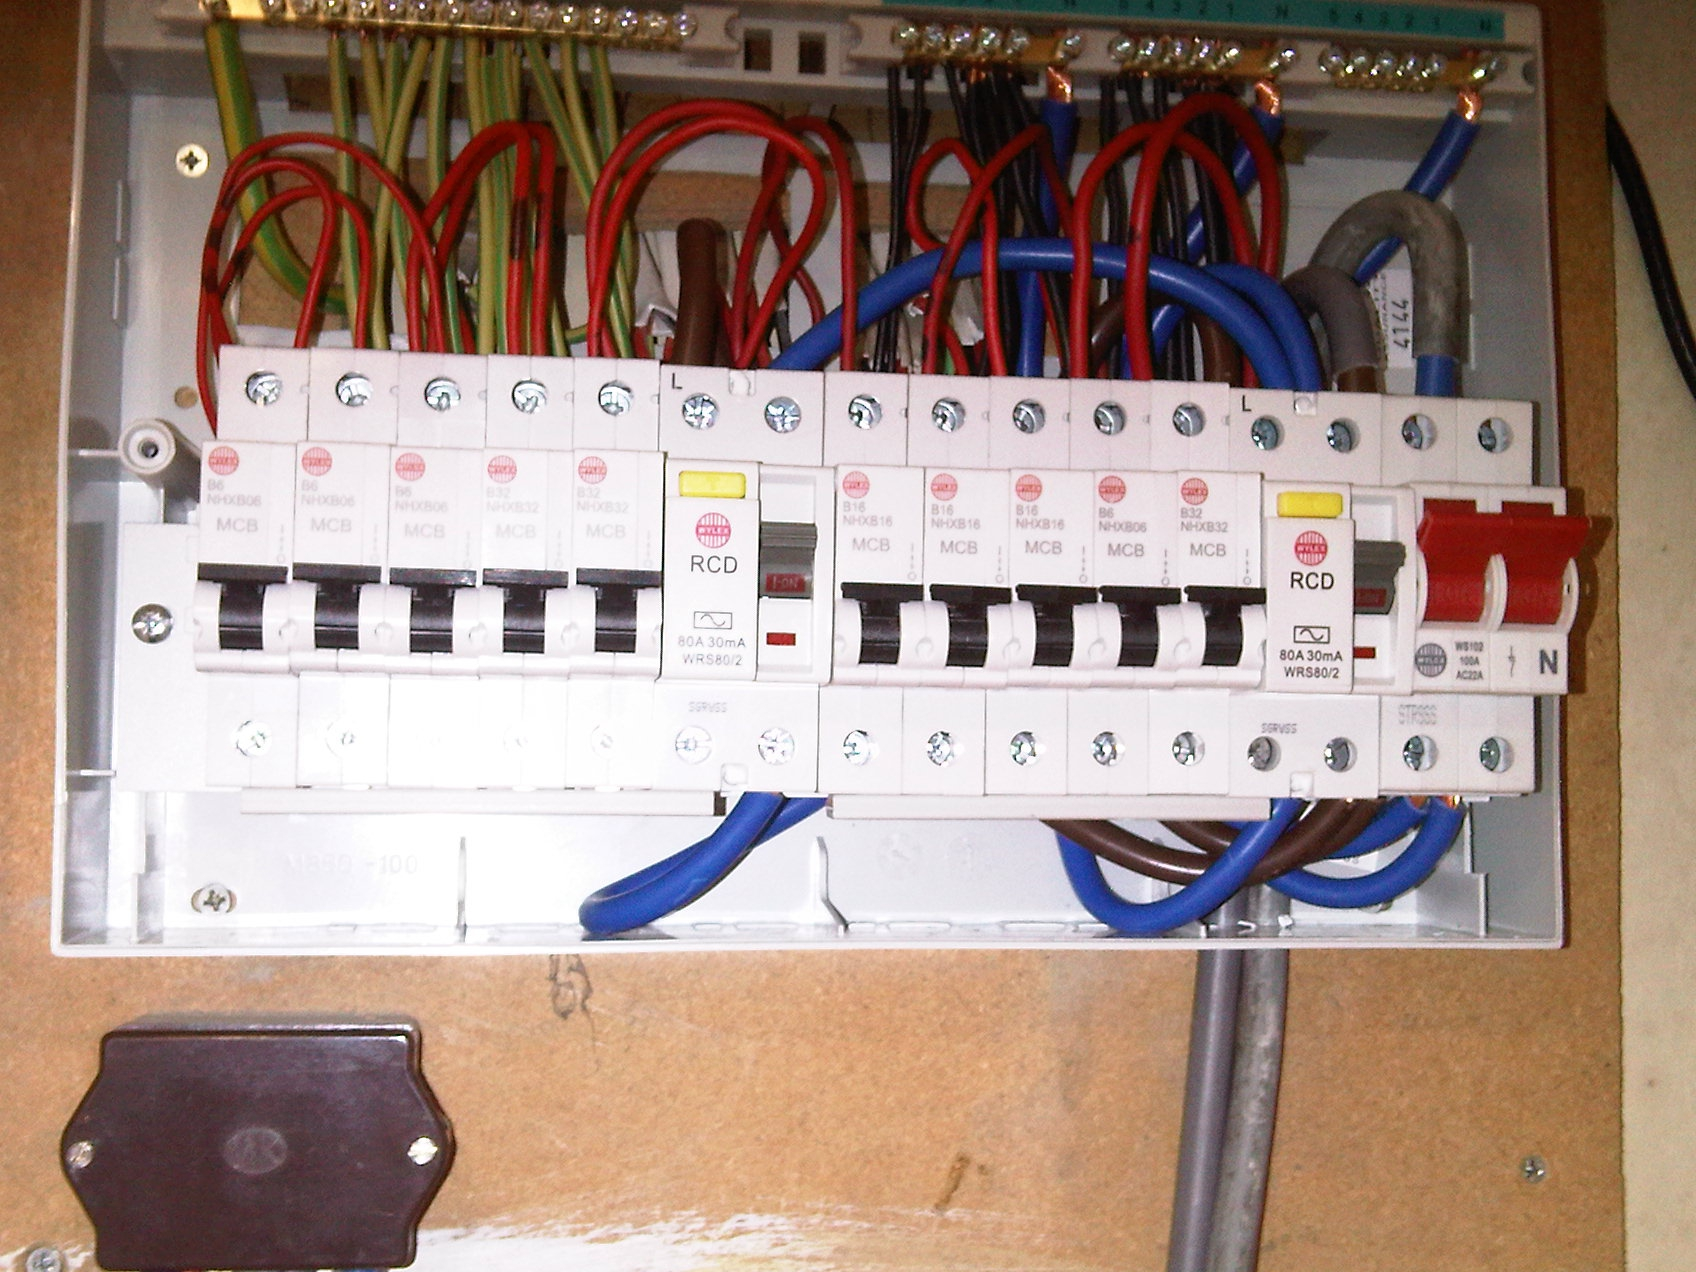 Fusebox 4 fuse switch box 120v electrical switch wiring diagrams \u2022 wiring fuse box in house at honlapkeszites.co